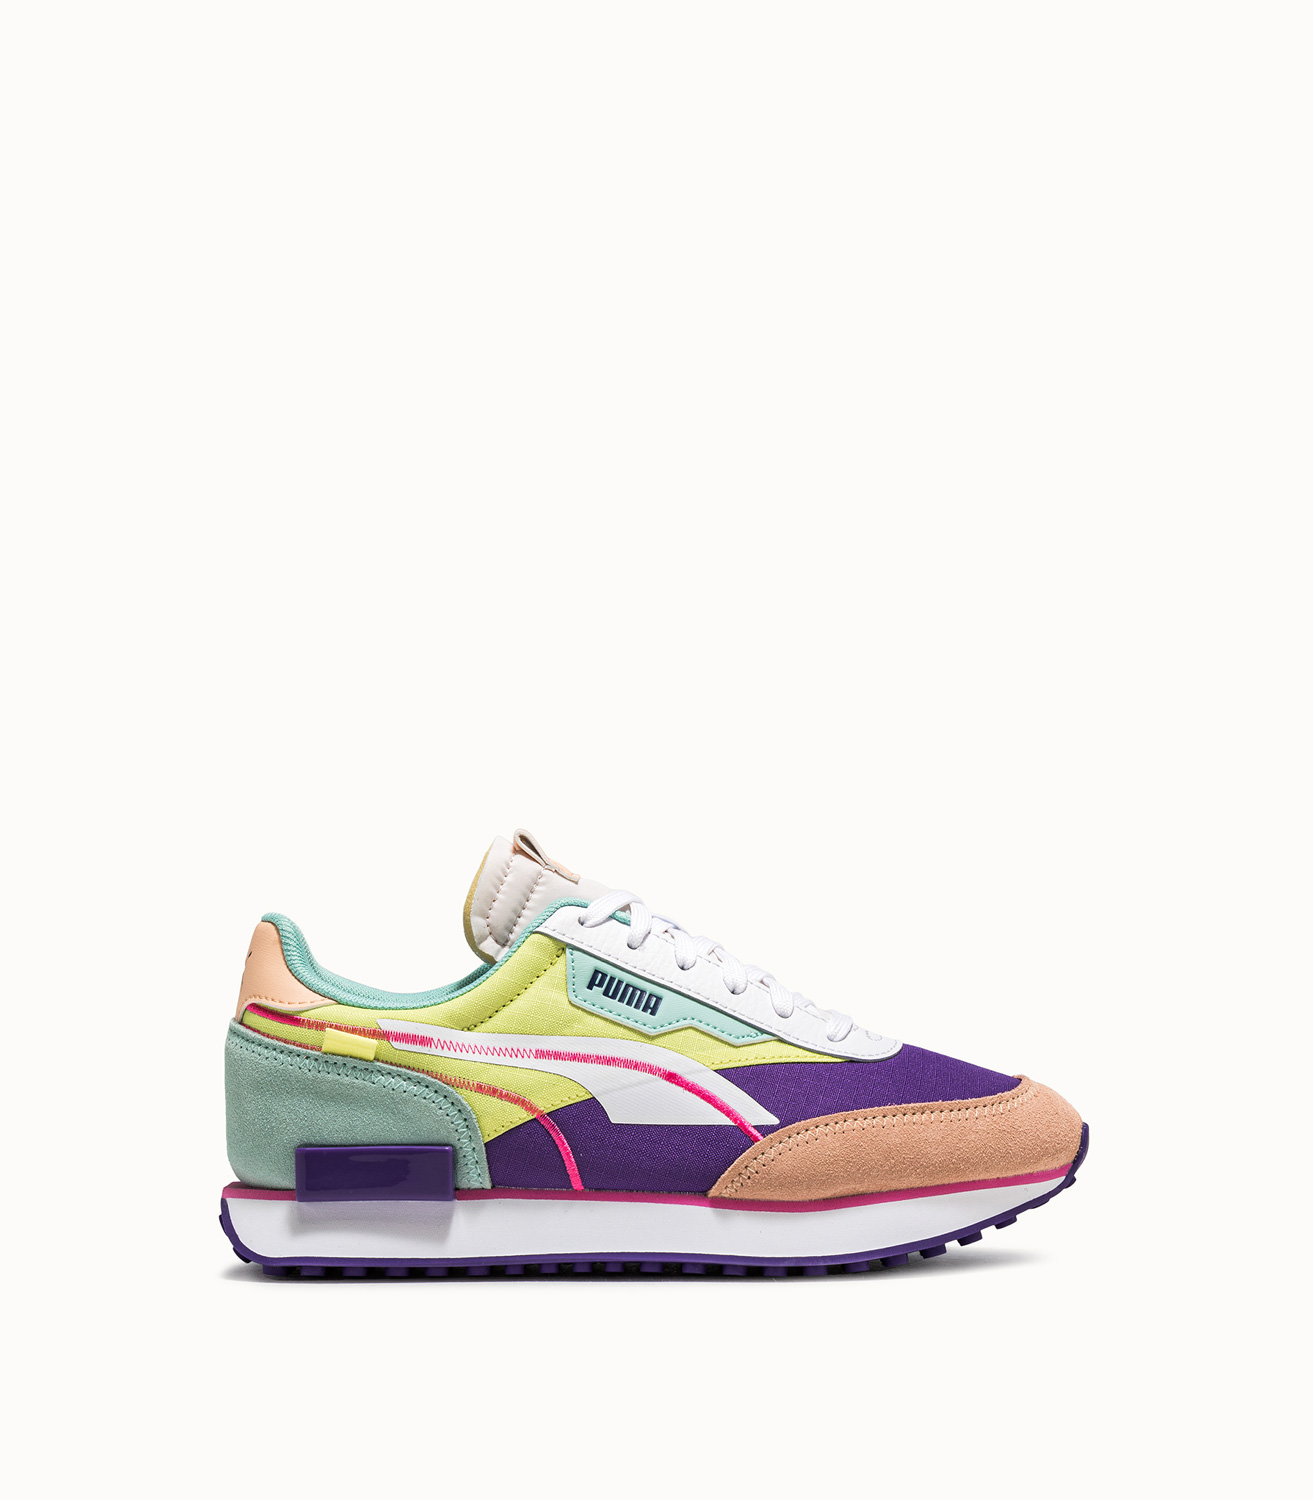 FUTURE RIDER TWOFOLD SD POP SNEAKERS COLOR YELLOW VIOLETS